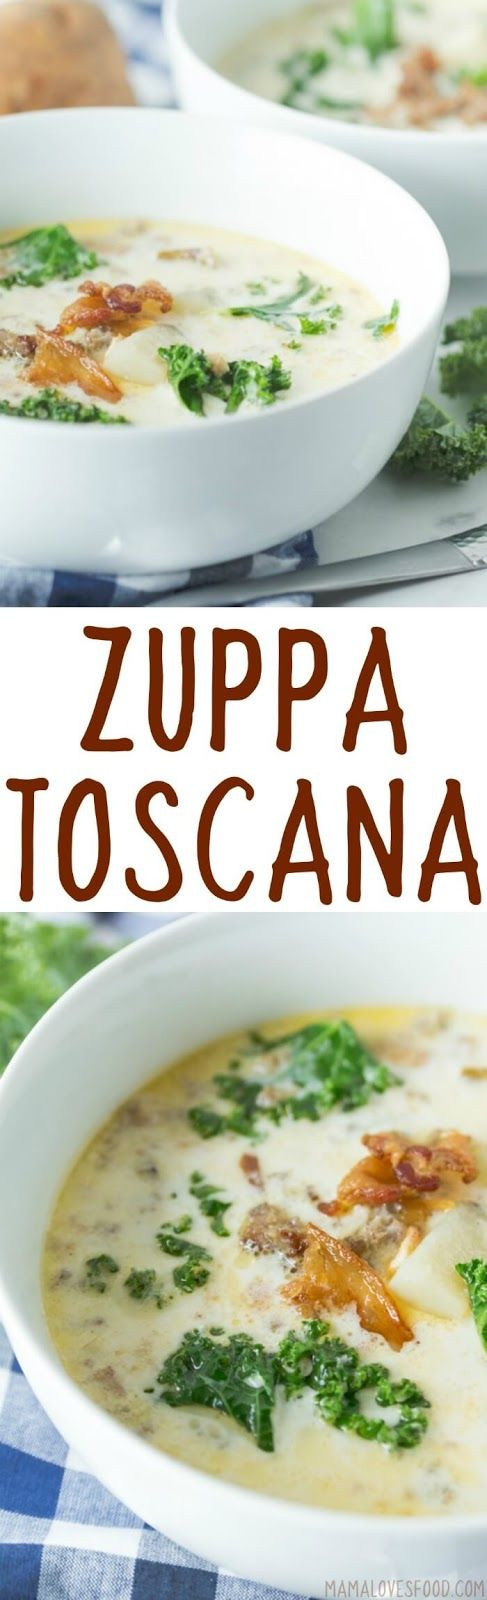 made it tonight! even better than Olive Garden!!!   Zuppa Toscana {Creamy Potato Sausage Soup} - Olive Garden Copycat Recipe